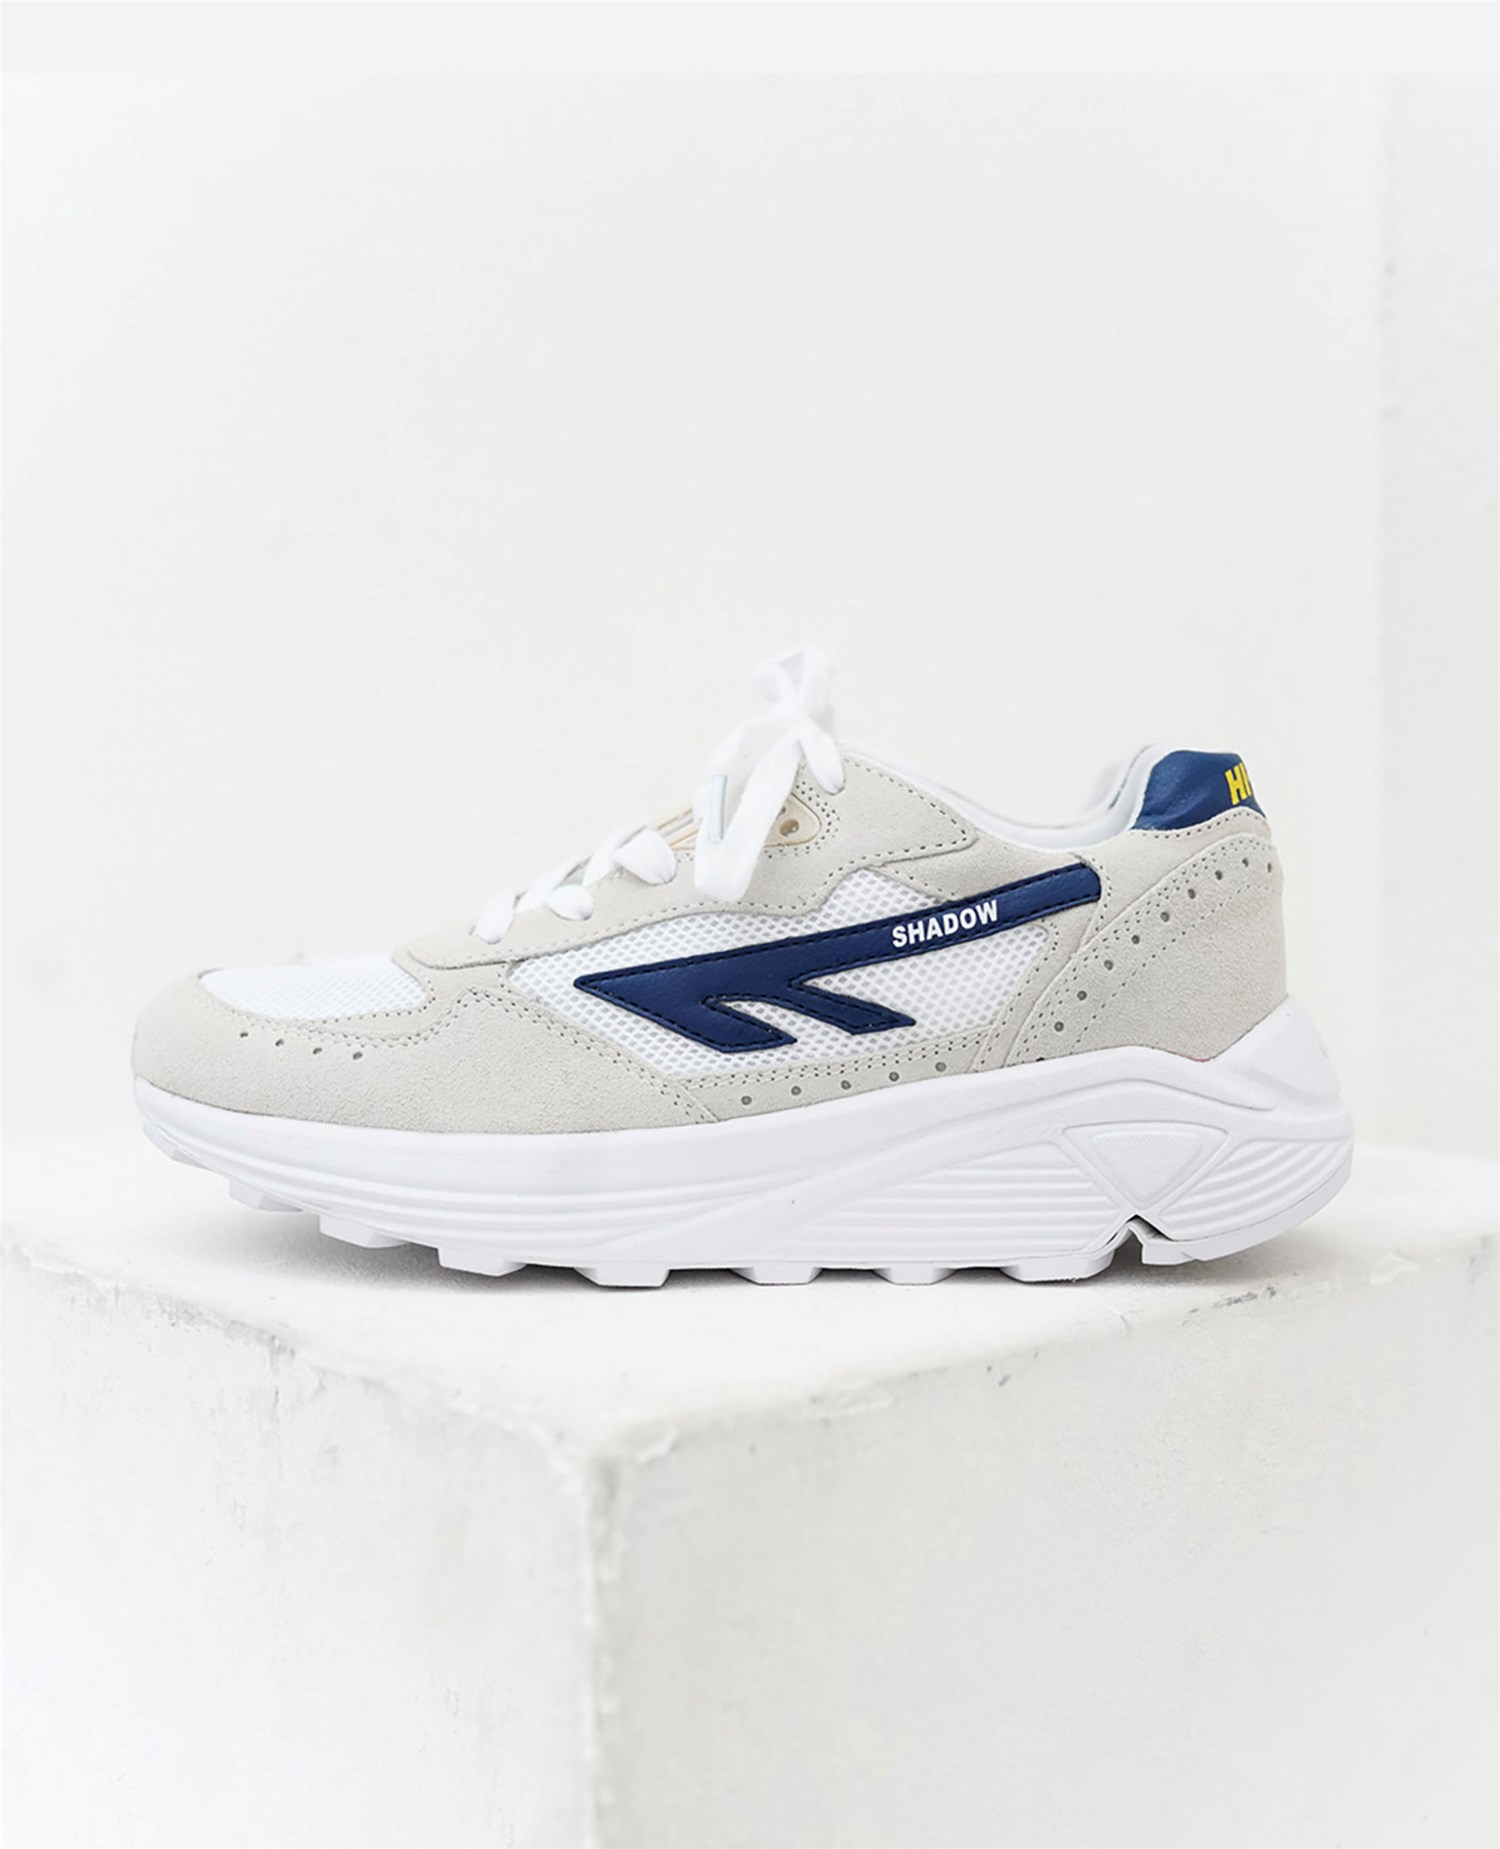 7bc04c8764d4 Naked - Supplying girls with sneakers